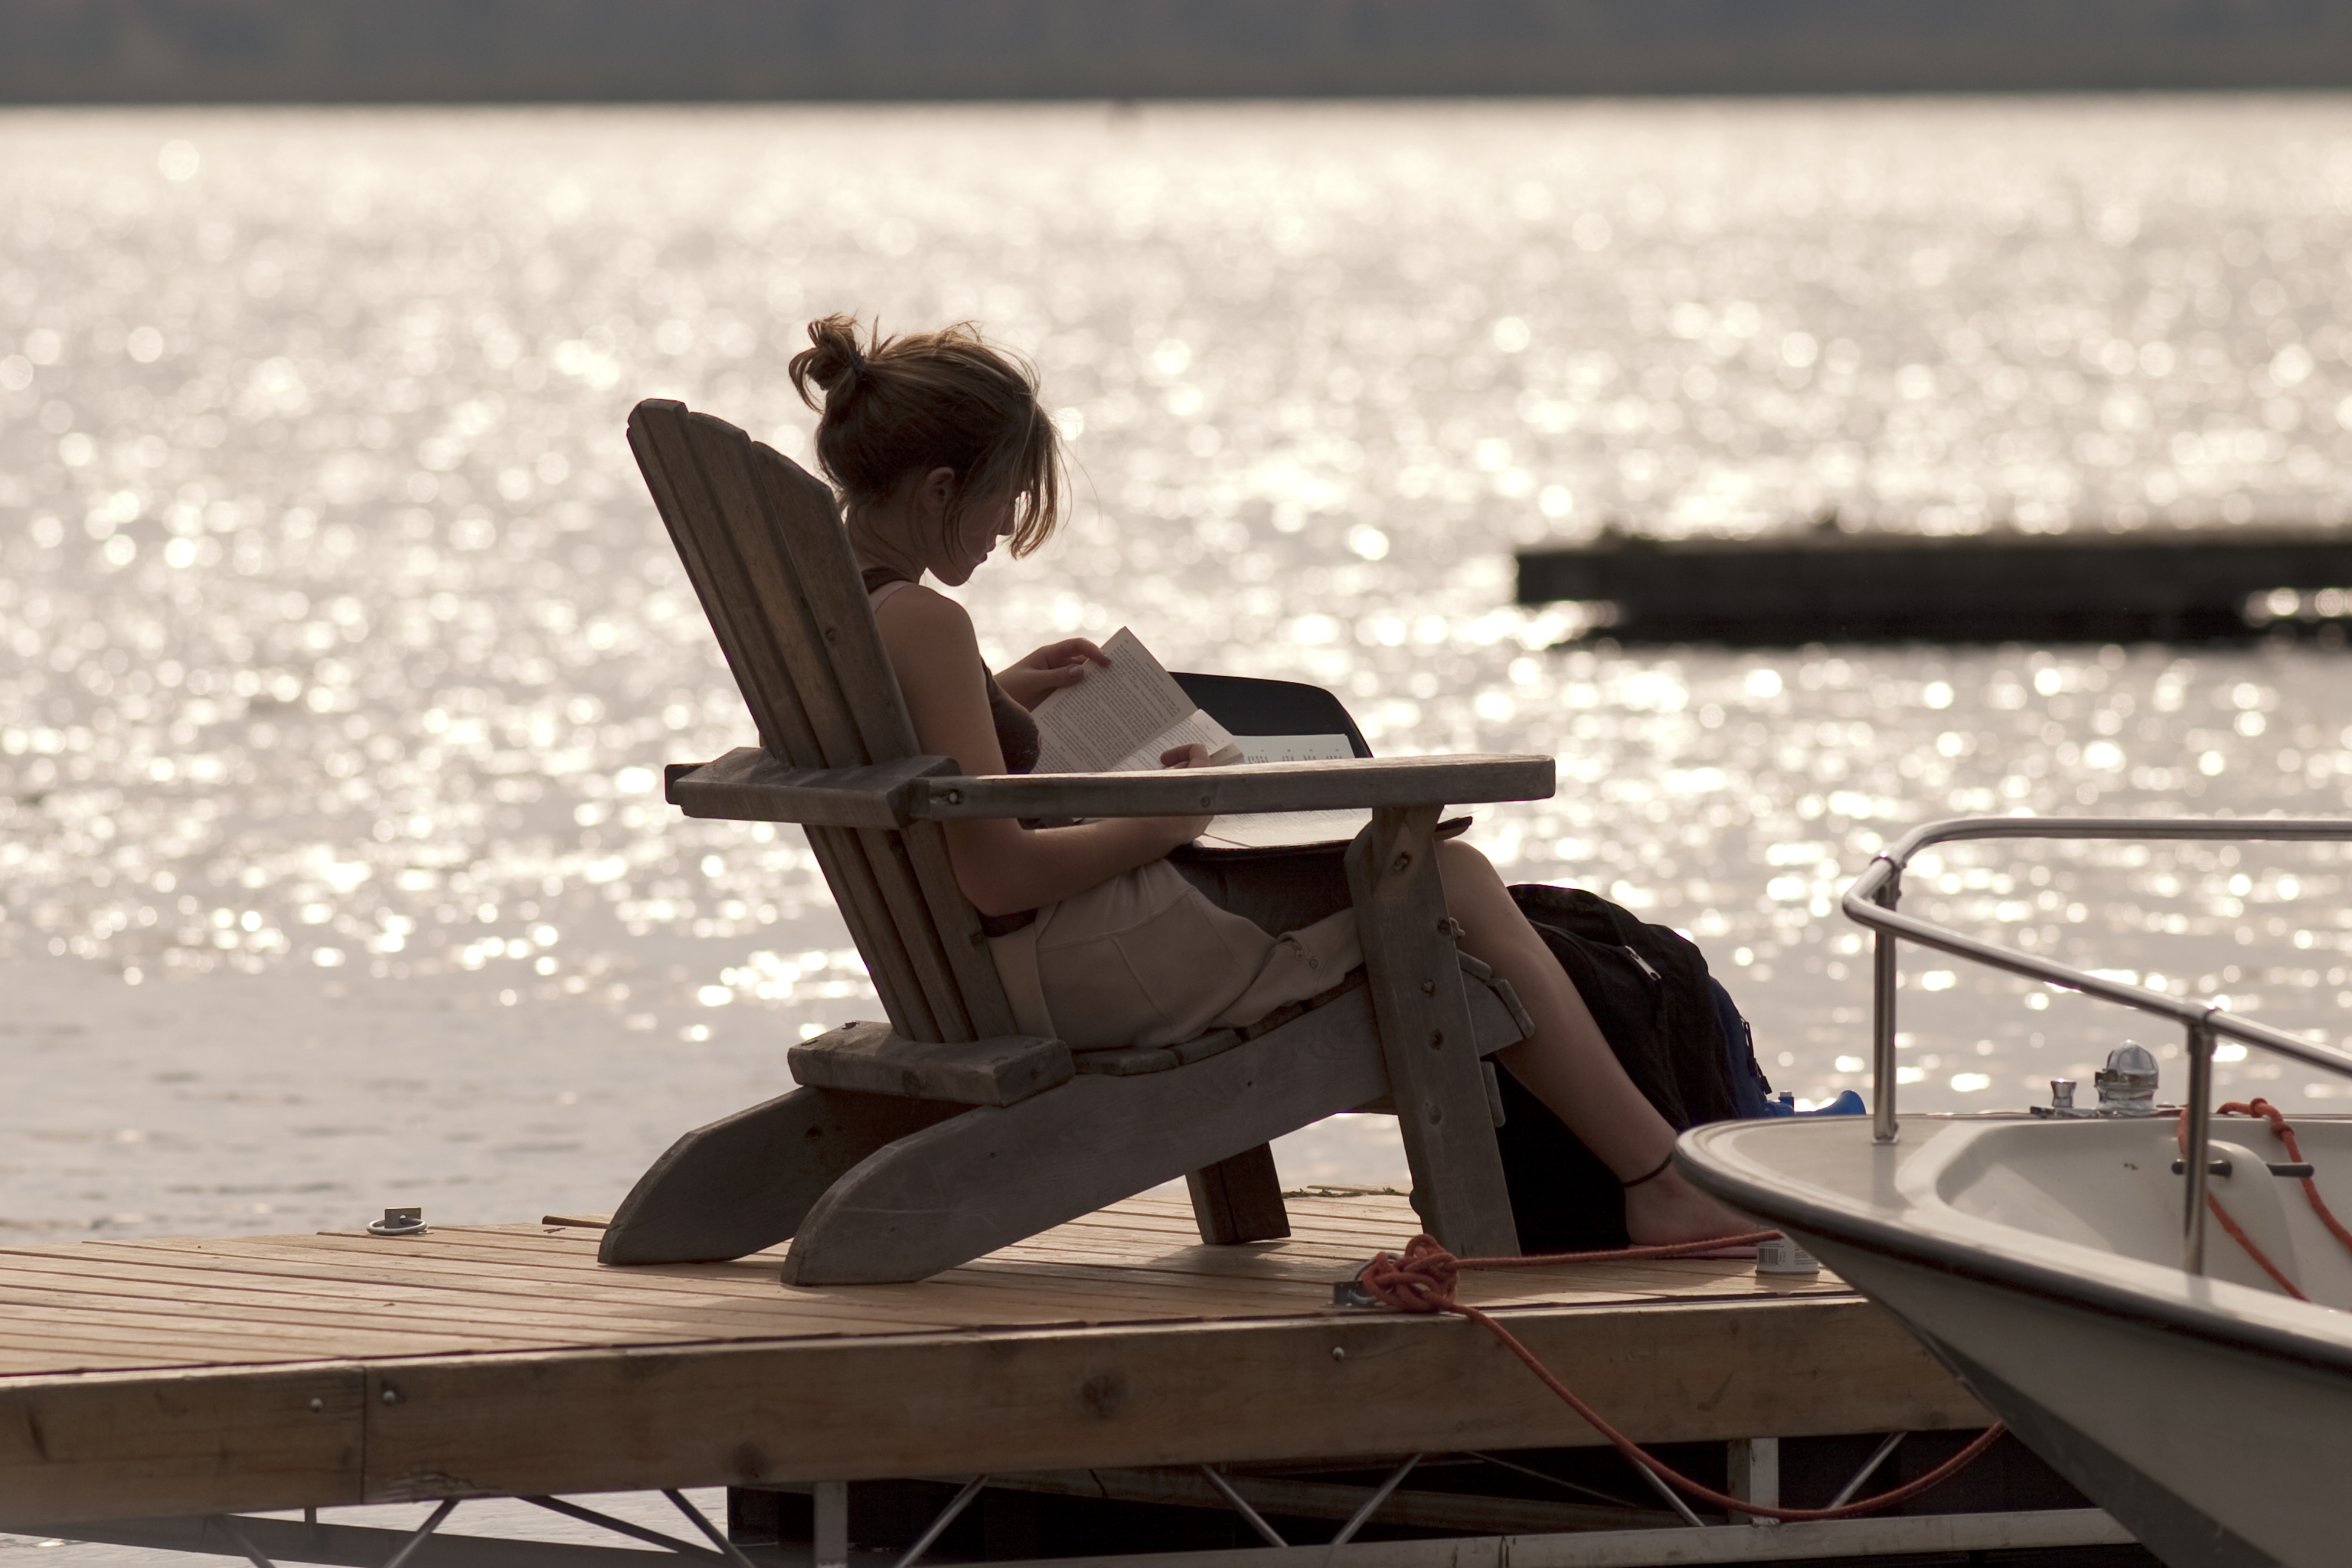 Summer break is a great time to read for pleasure or self-interest